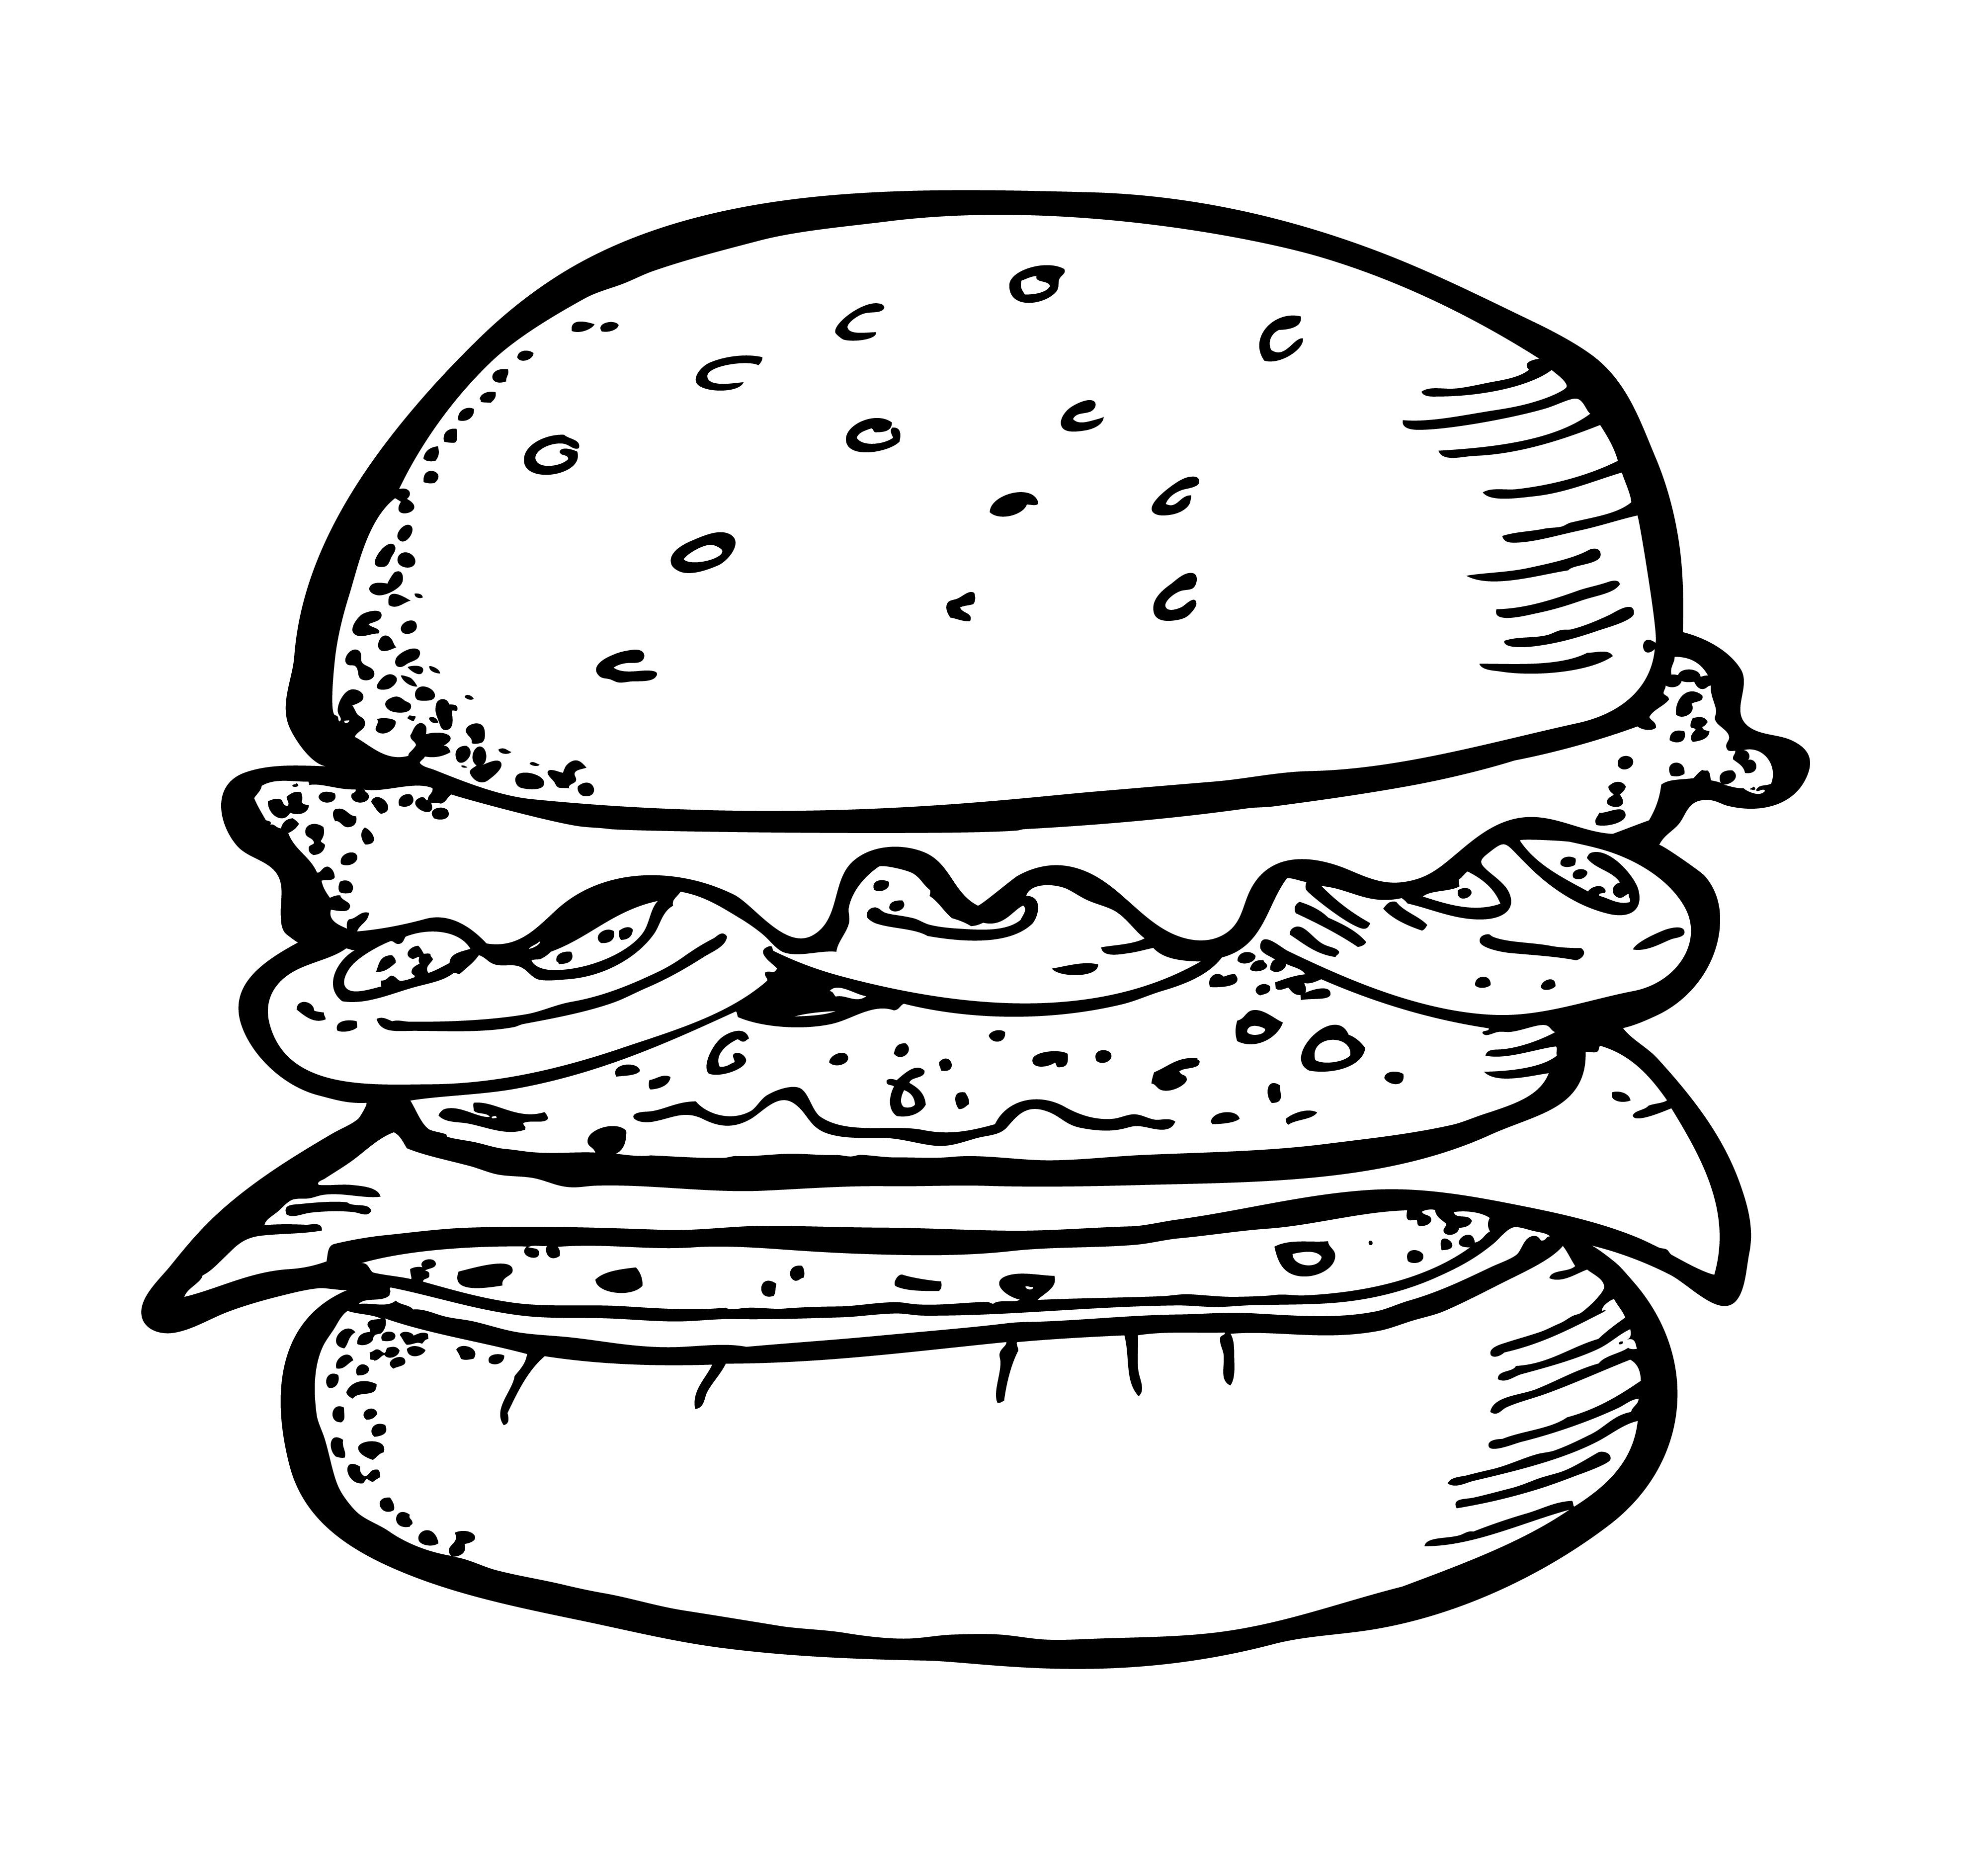 Simple burger and fries black and white clipart picture royalty free stock Burger And Fries Drawing Burger and fries drawing delux ... picture royalty free stock